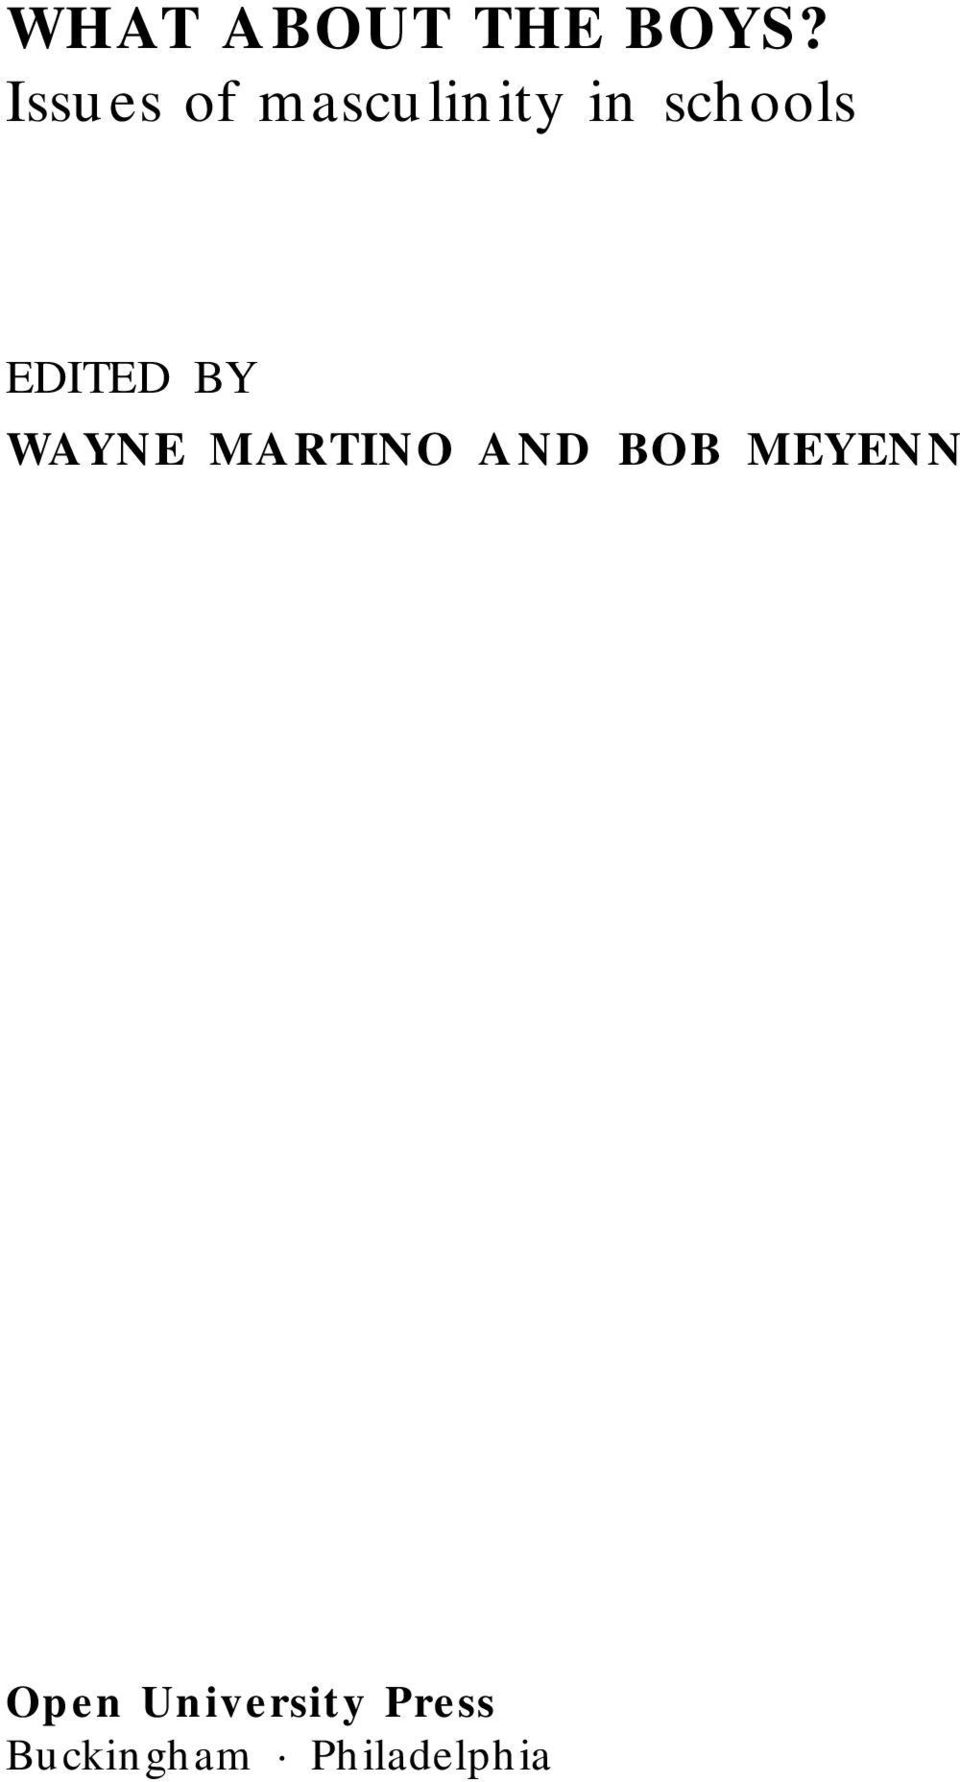 EDITED BY WAYNE MARTINO AND BOB